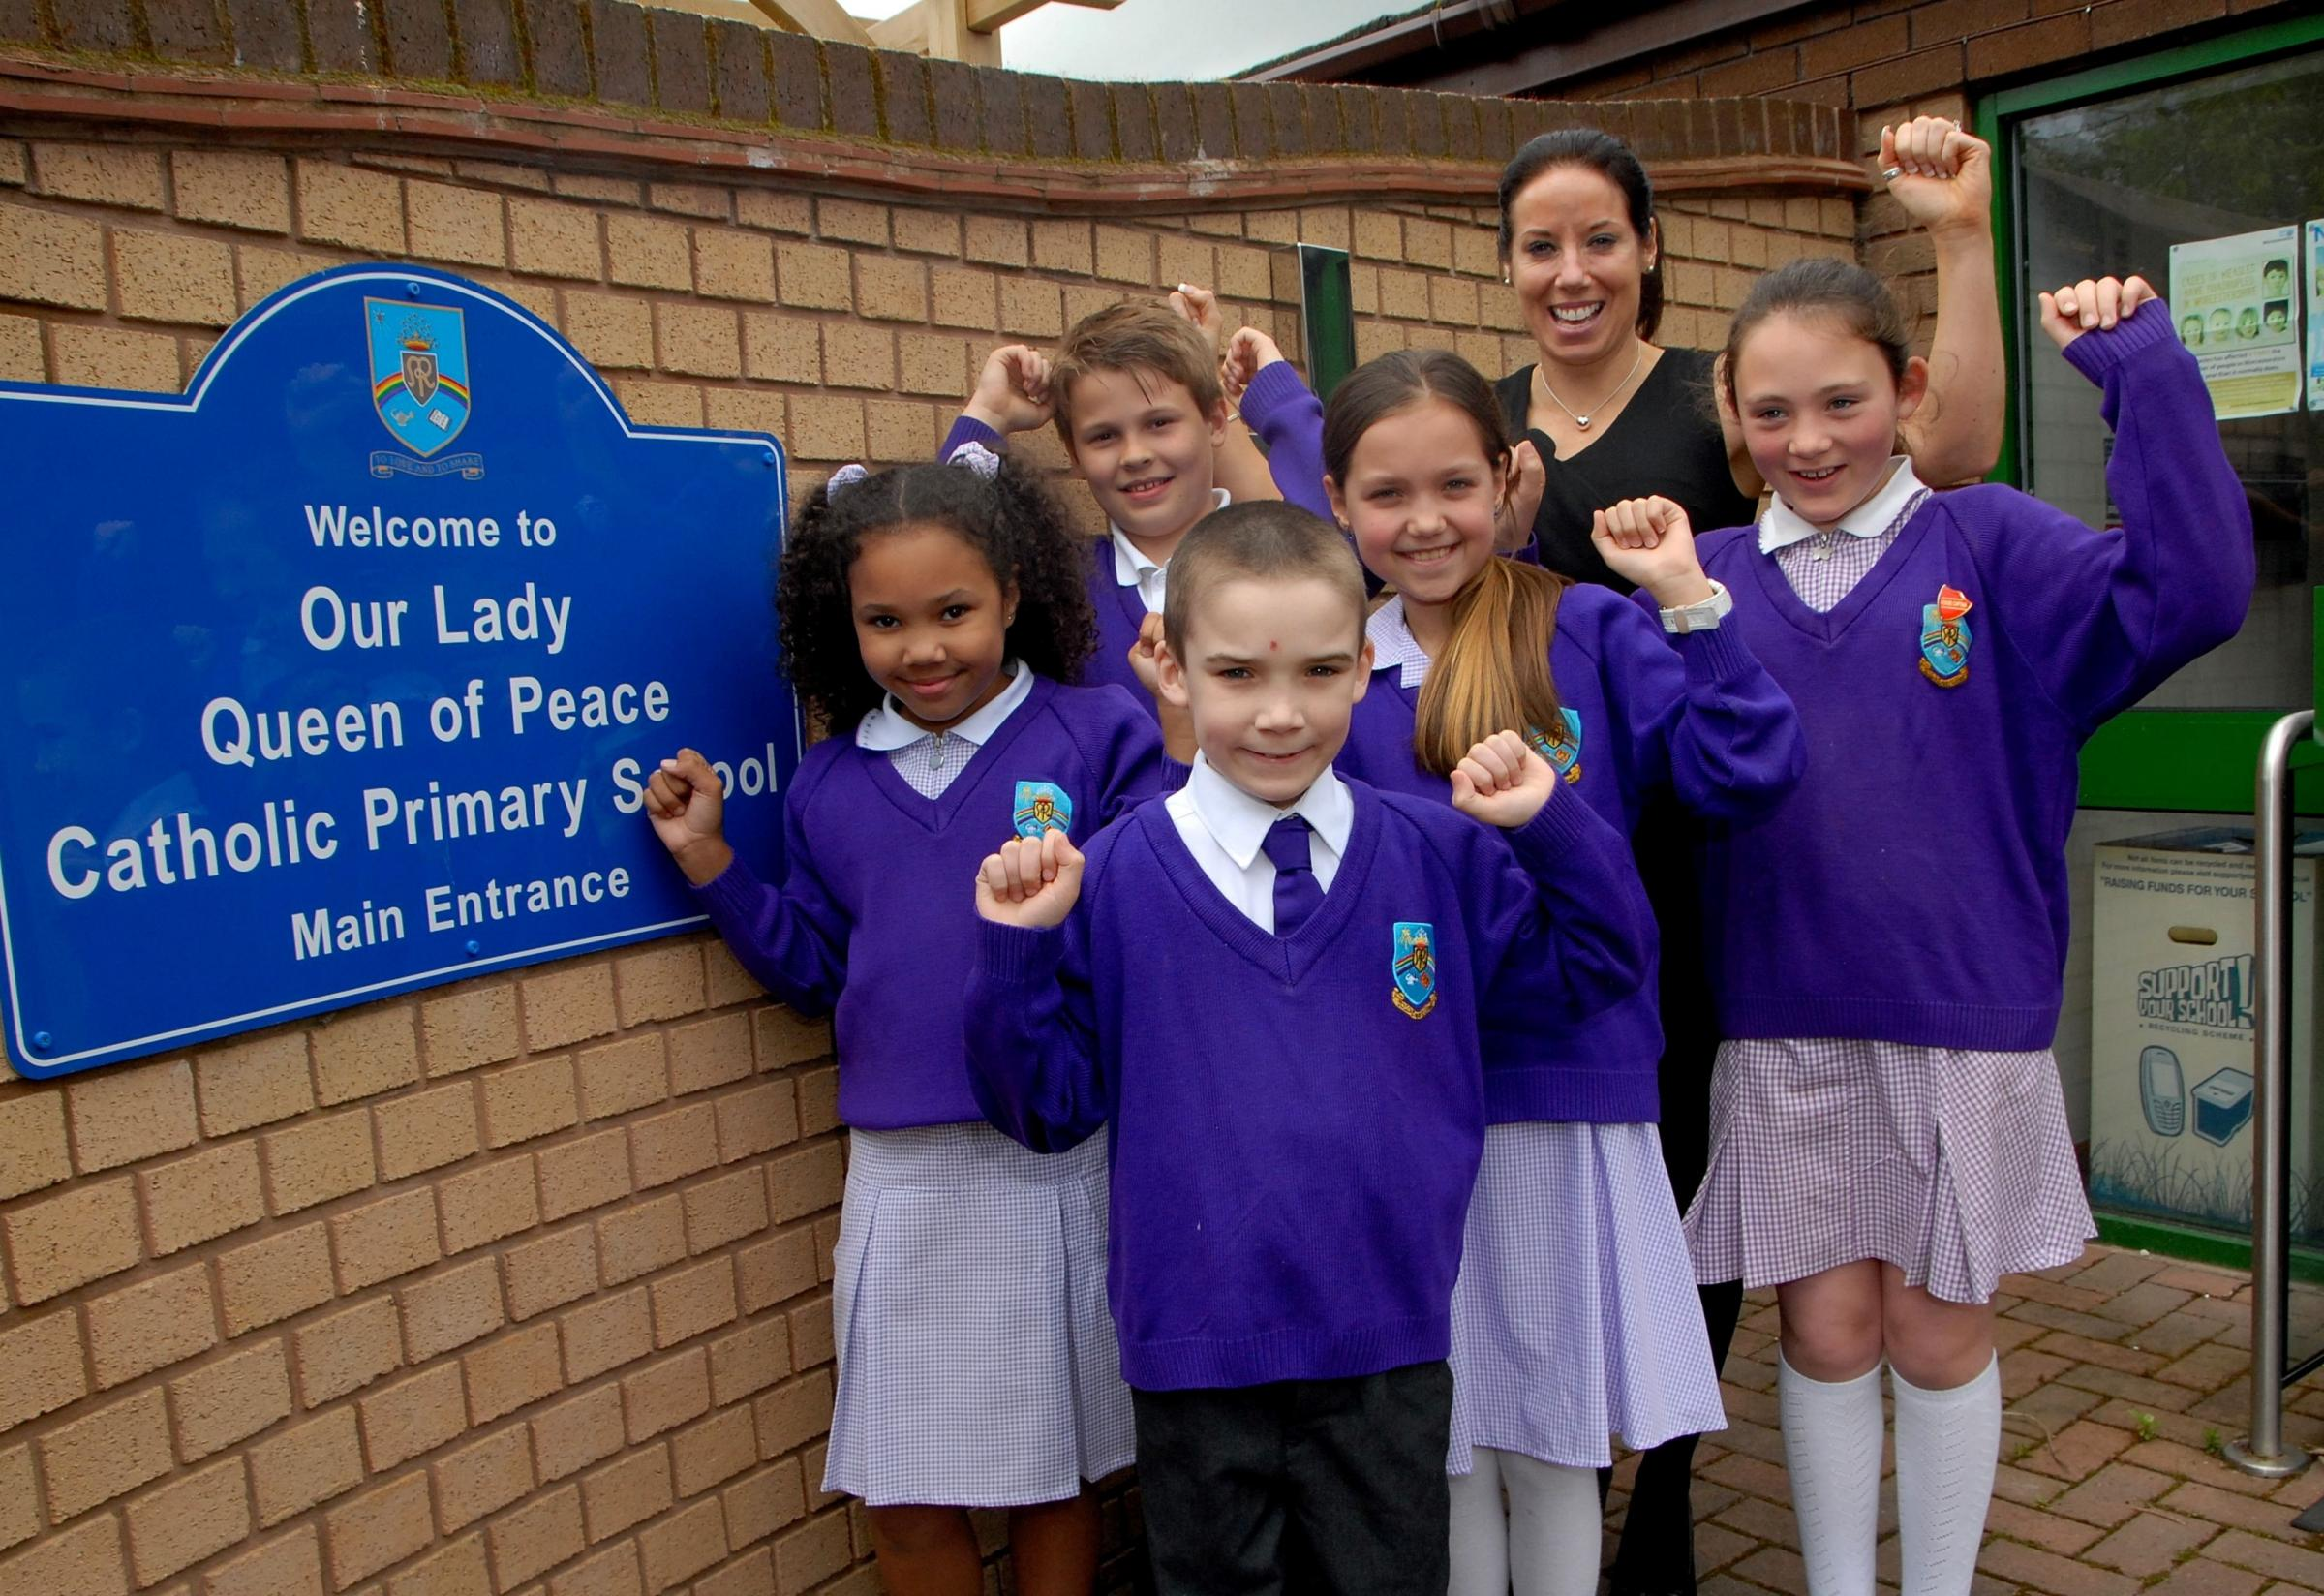 Our Lady Queen of Peace Catholic Primary College has received a good Ofsted report. Front - Lewis Fredricks, eight. Back from left - Darcy-Alexis Frater, eight, Jakub Wasilewski, 11, Veronique Glass, ten, Gwen Fennell, head teacher, Isobel Ward, 11. Pictu